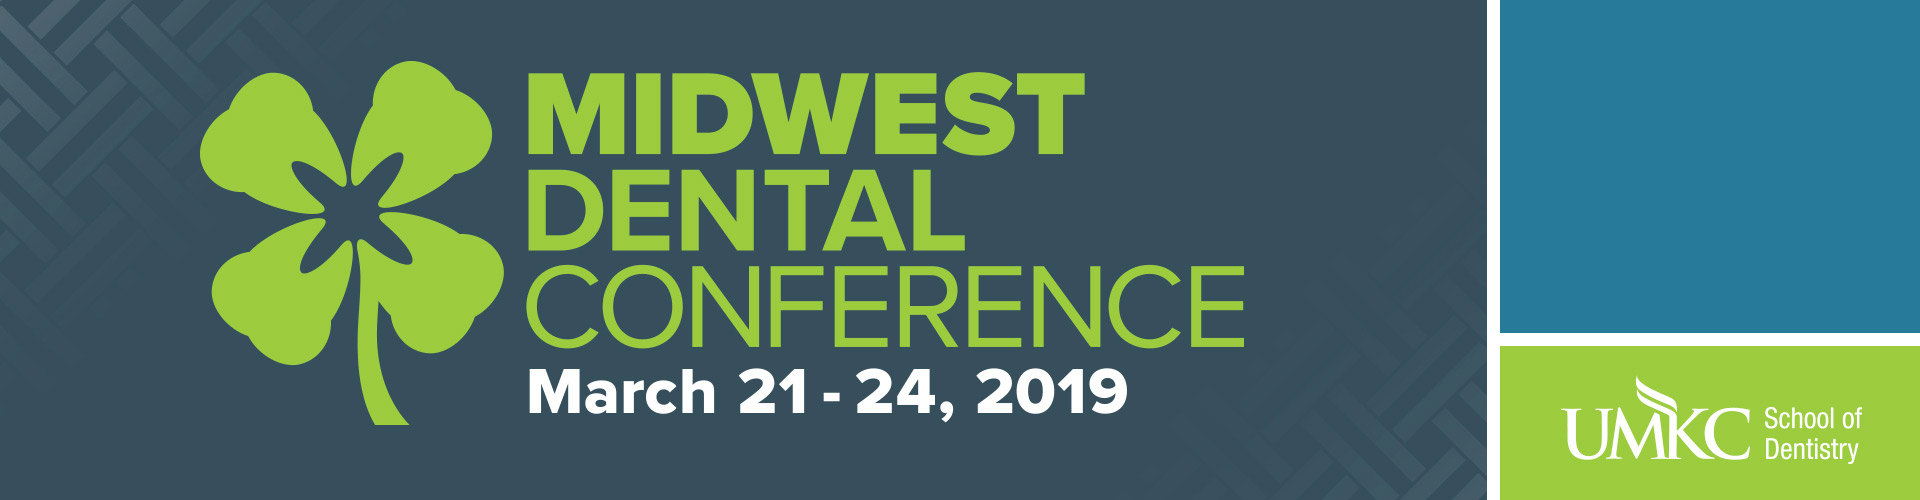 2019 Midwest Dental Conference